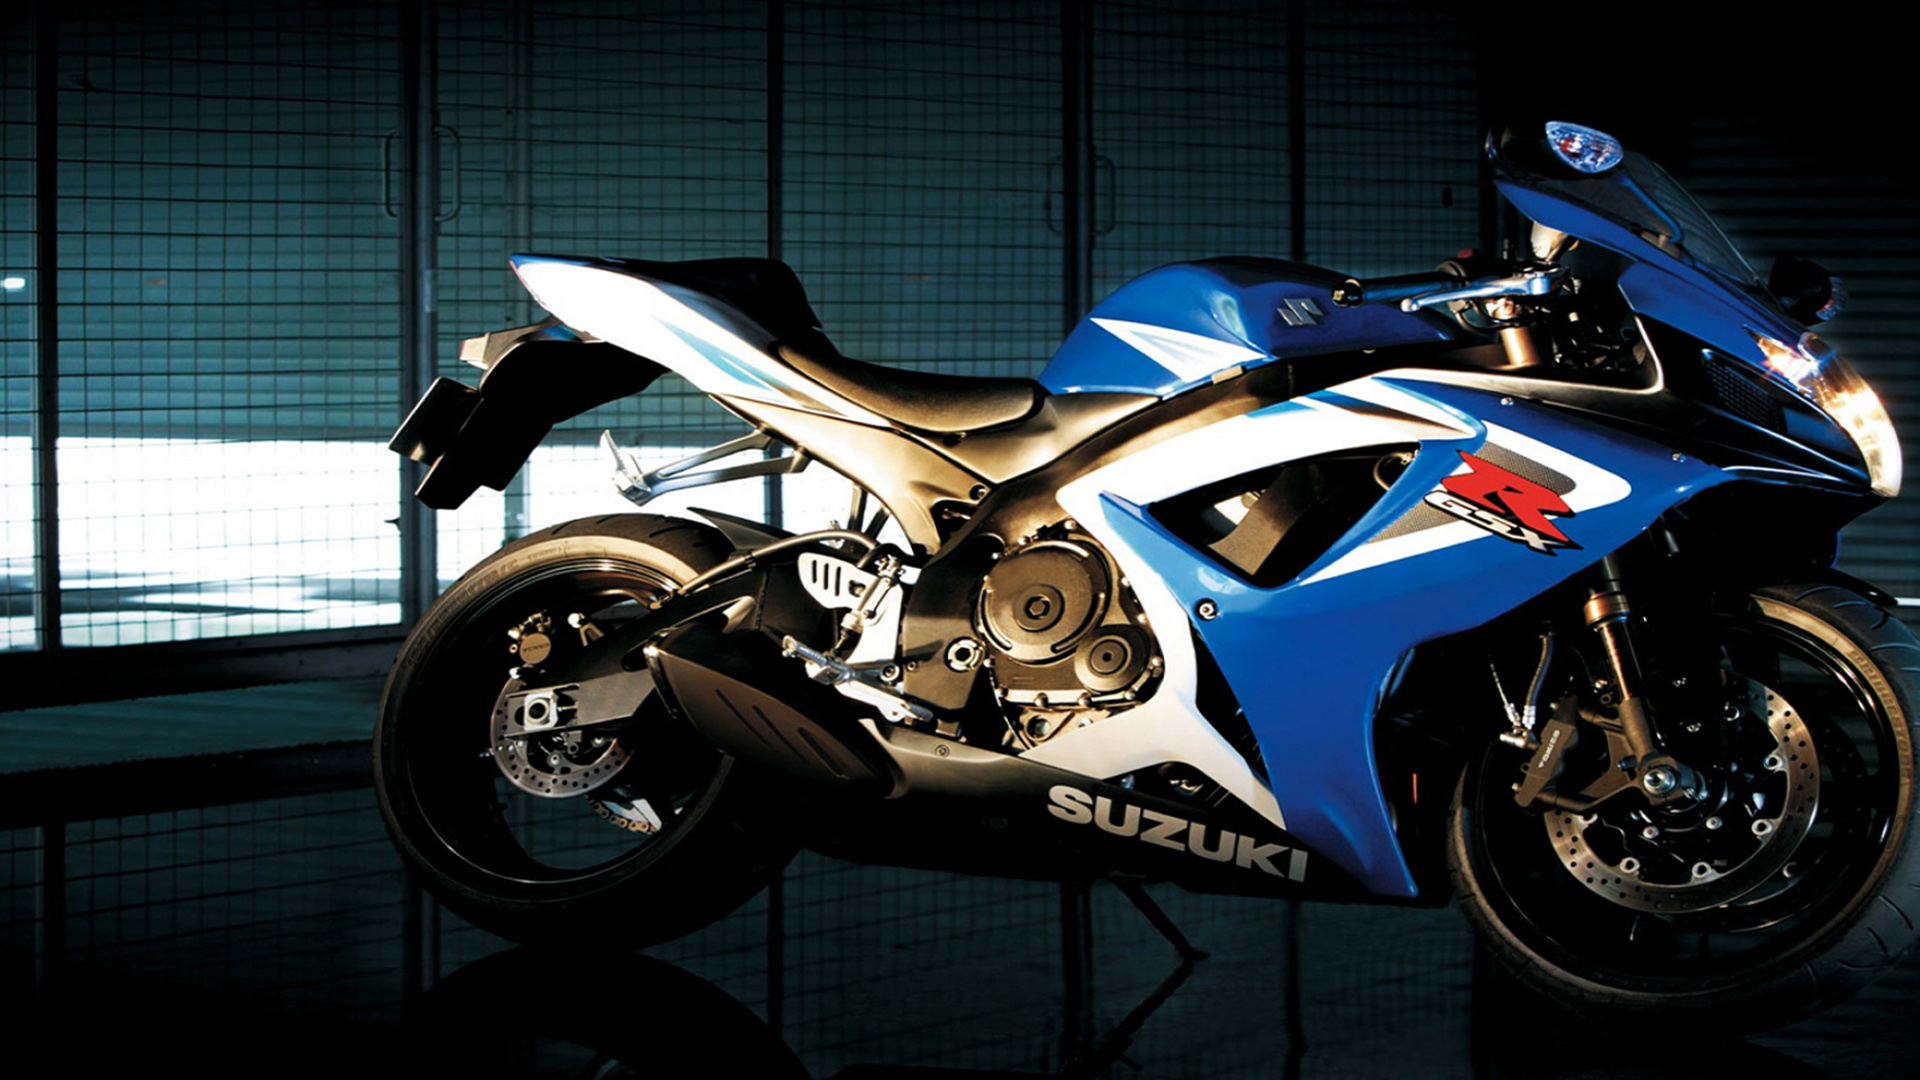 Wallpaper Moto Suzuki R Gsx Wallpaper Hd Fondos De